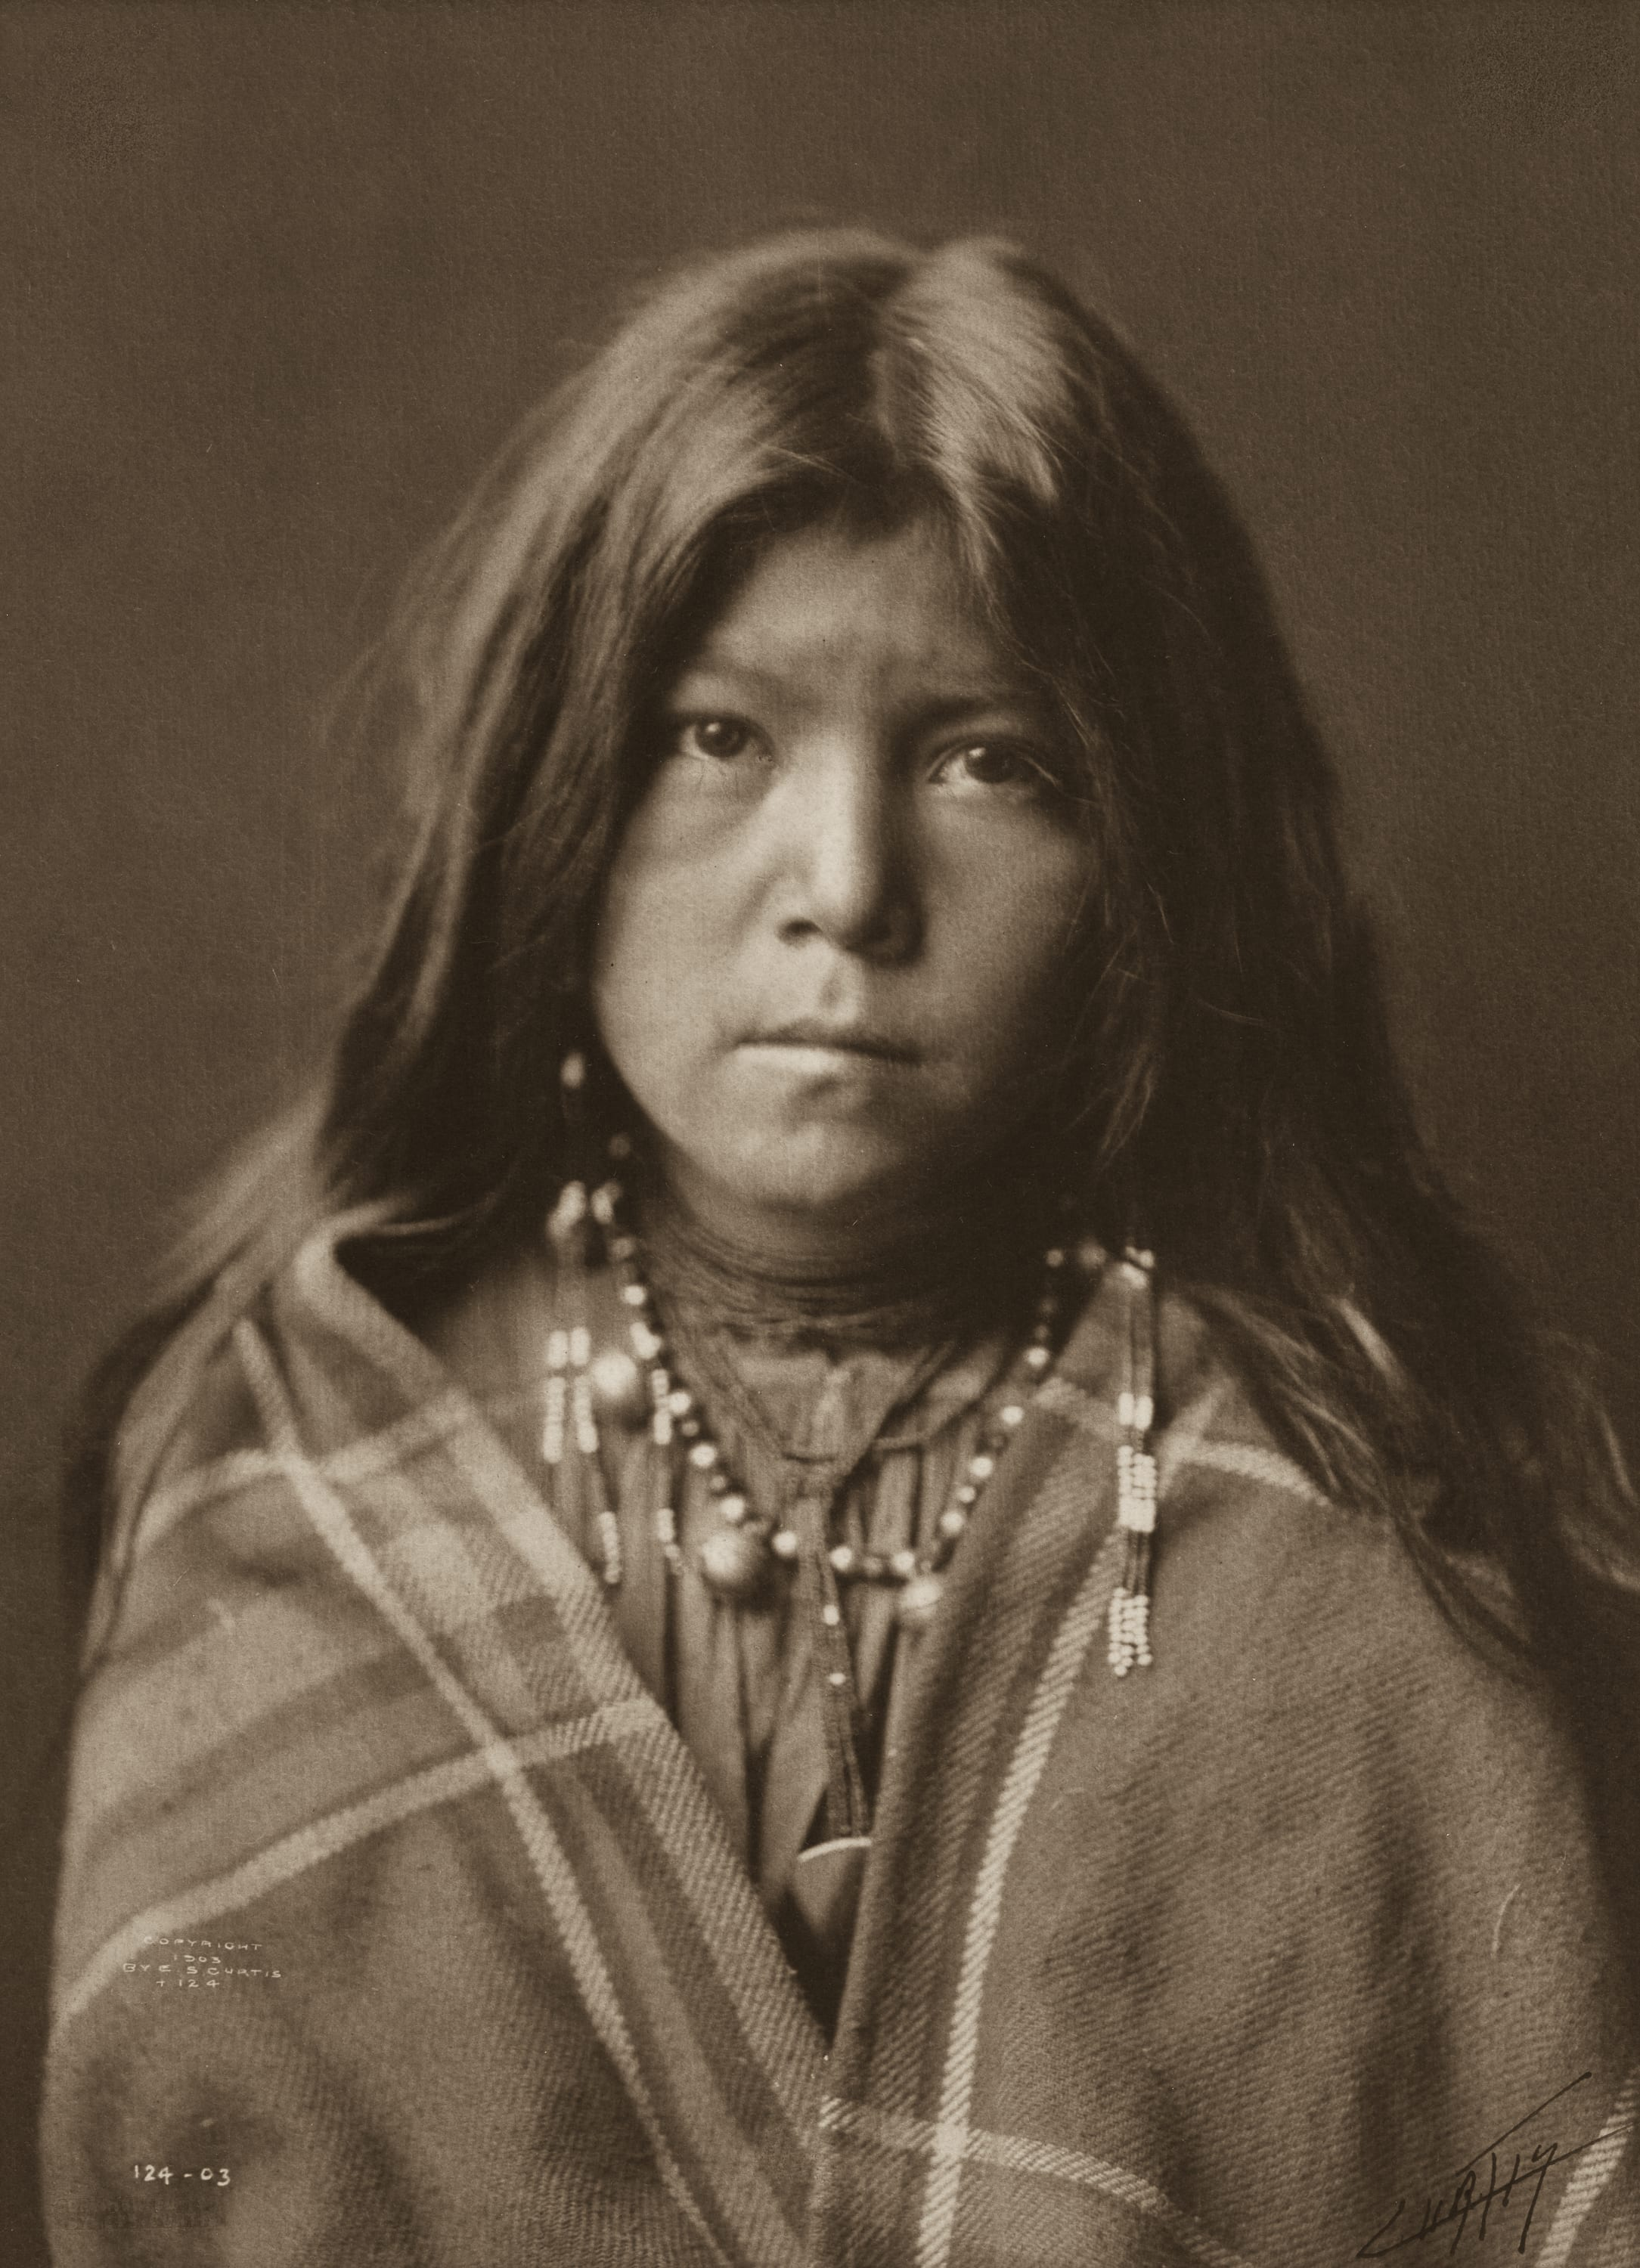 By Her Hand: Native American Women, Their Art, and The Photographs of Edward S. Curtis   Interview with Seth Hopkins of the Booth Western Art Museum